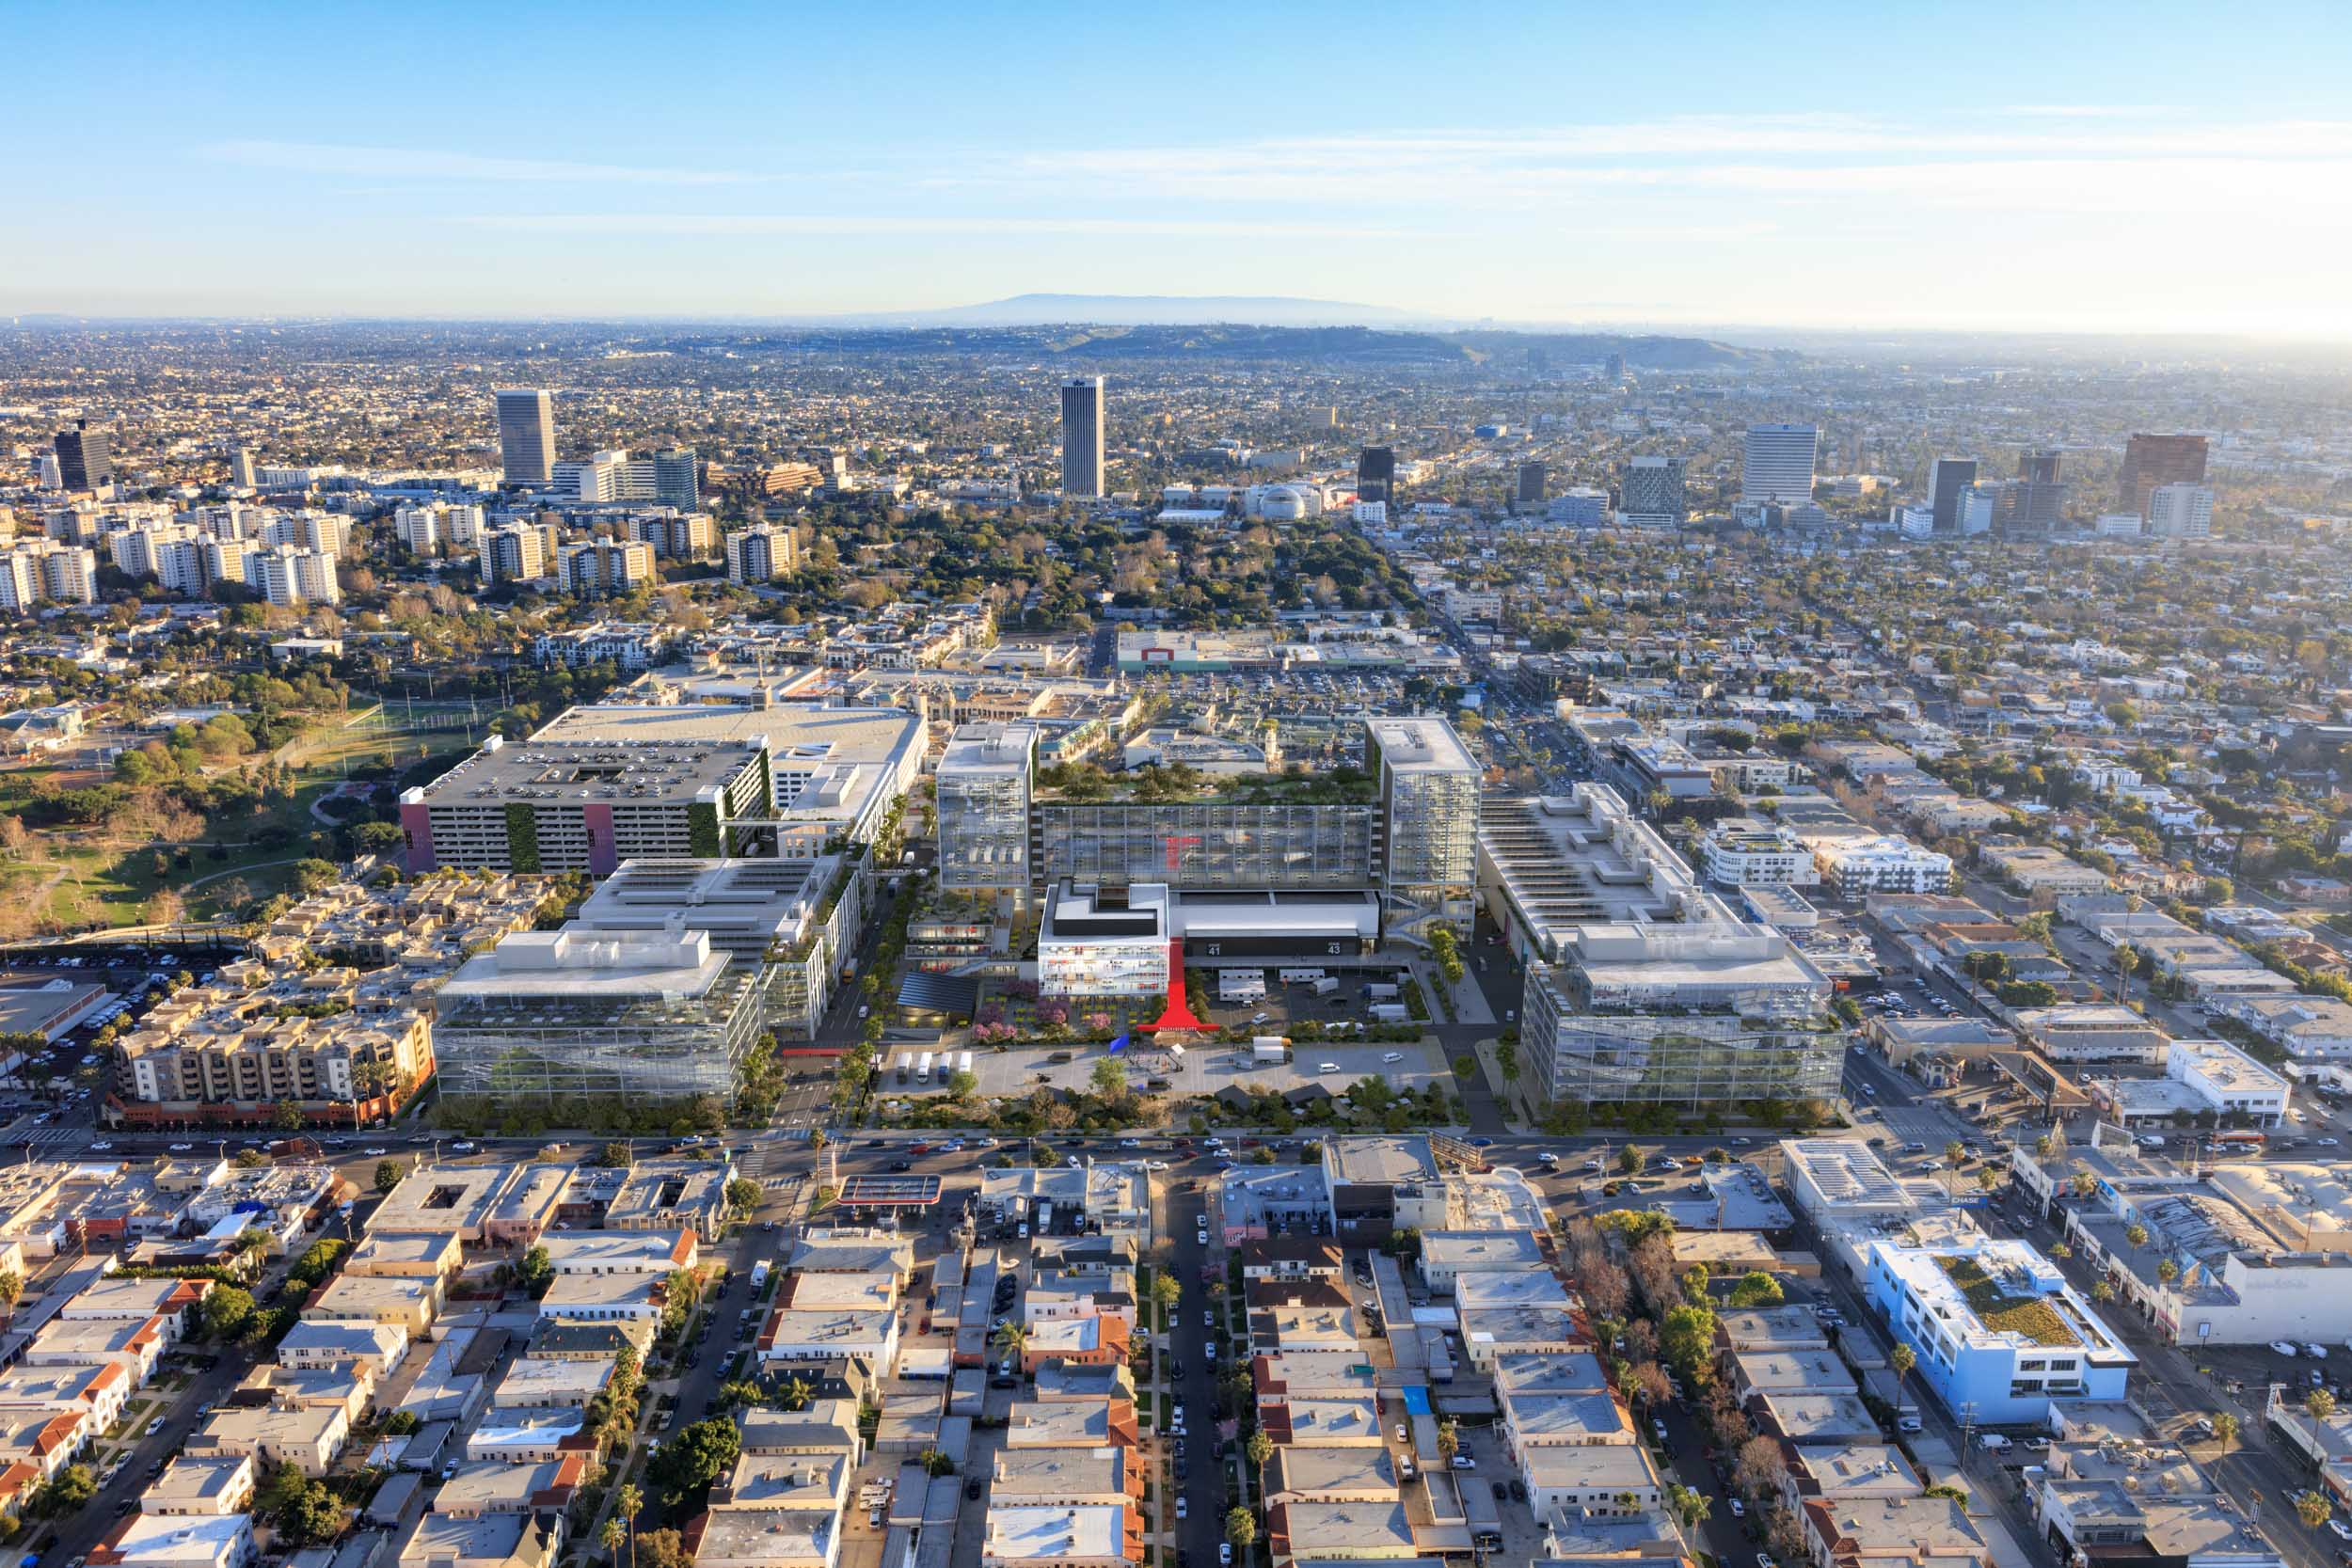 An aerial view of the proposed Television City 2050 with the surrounding city of Los Angeles and mountains in the background